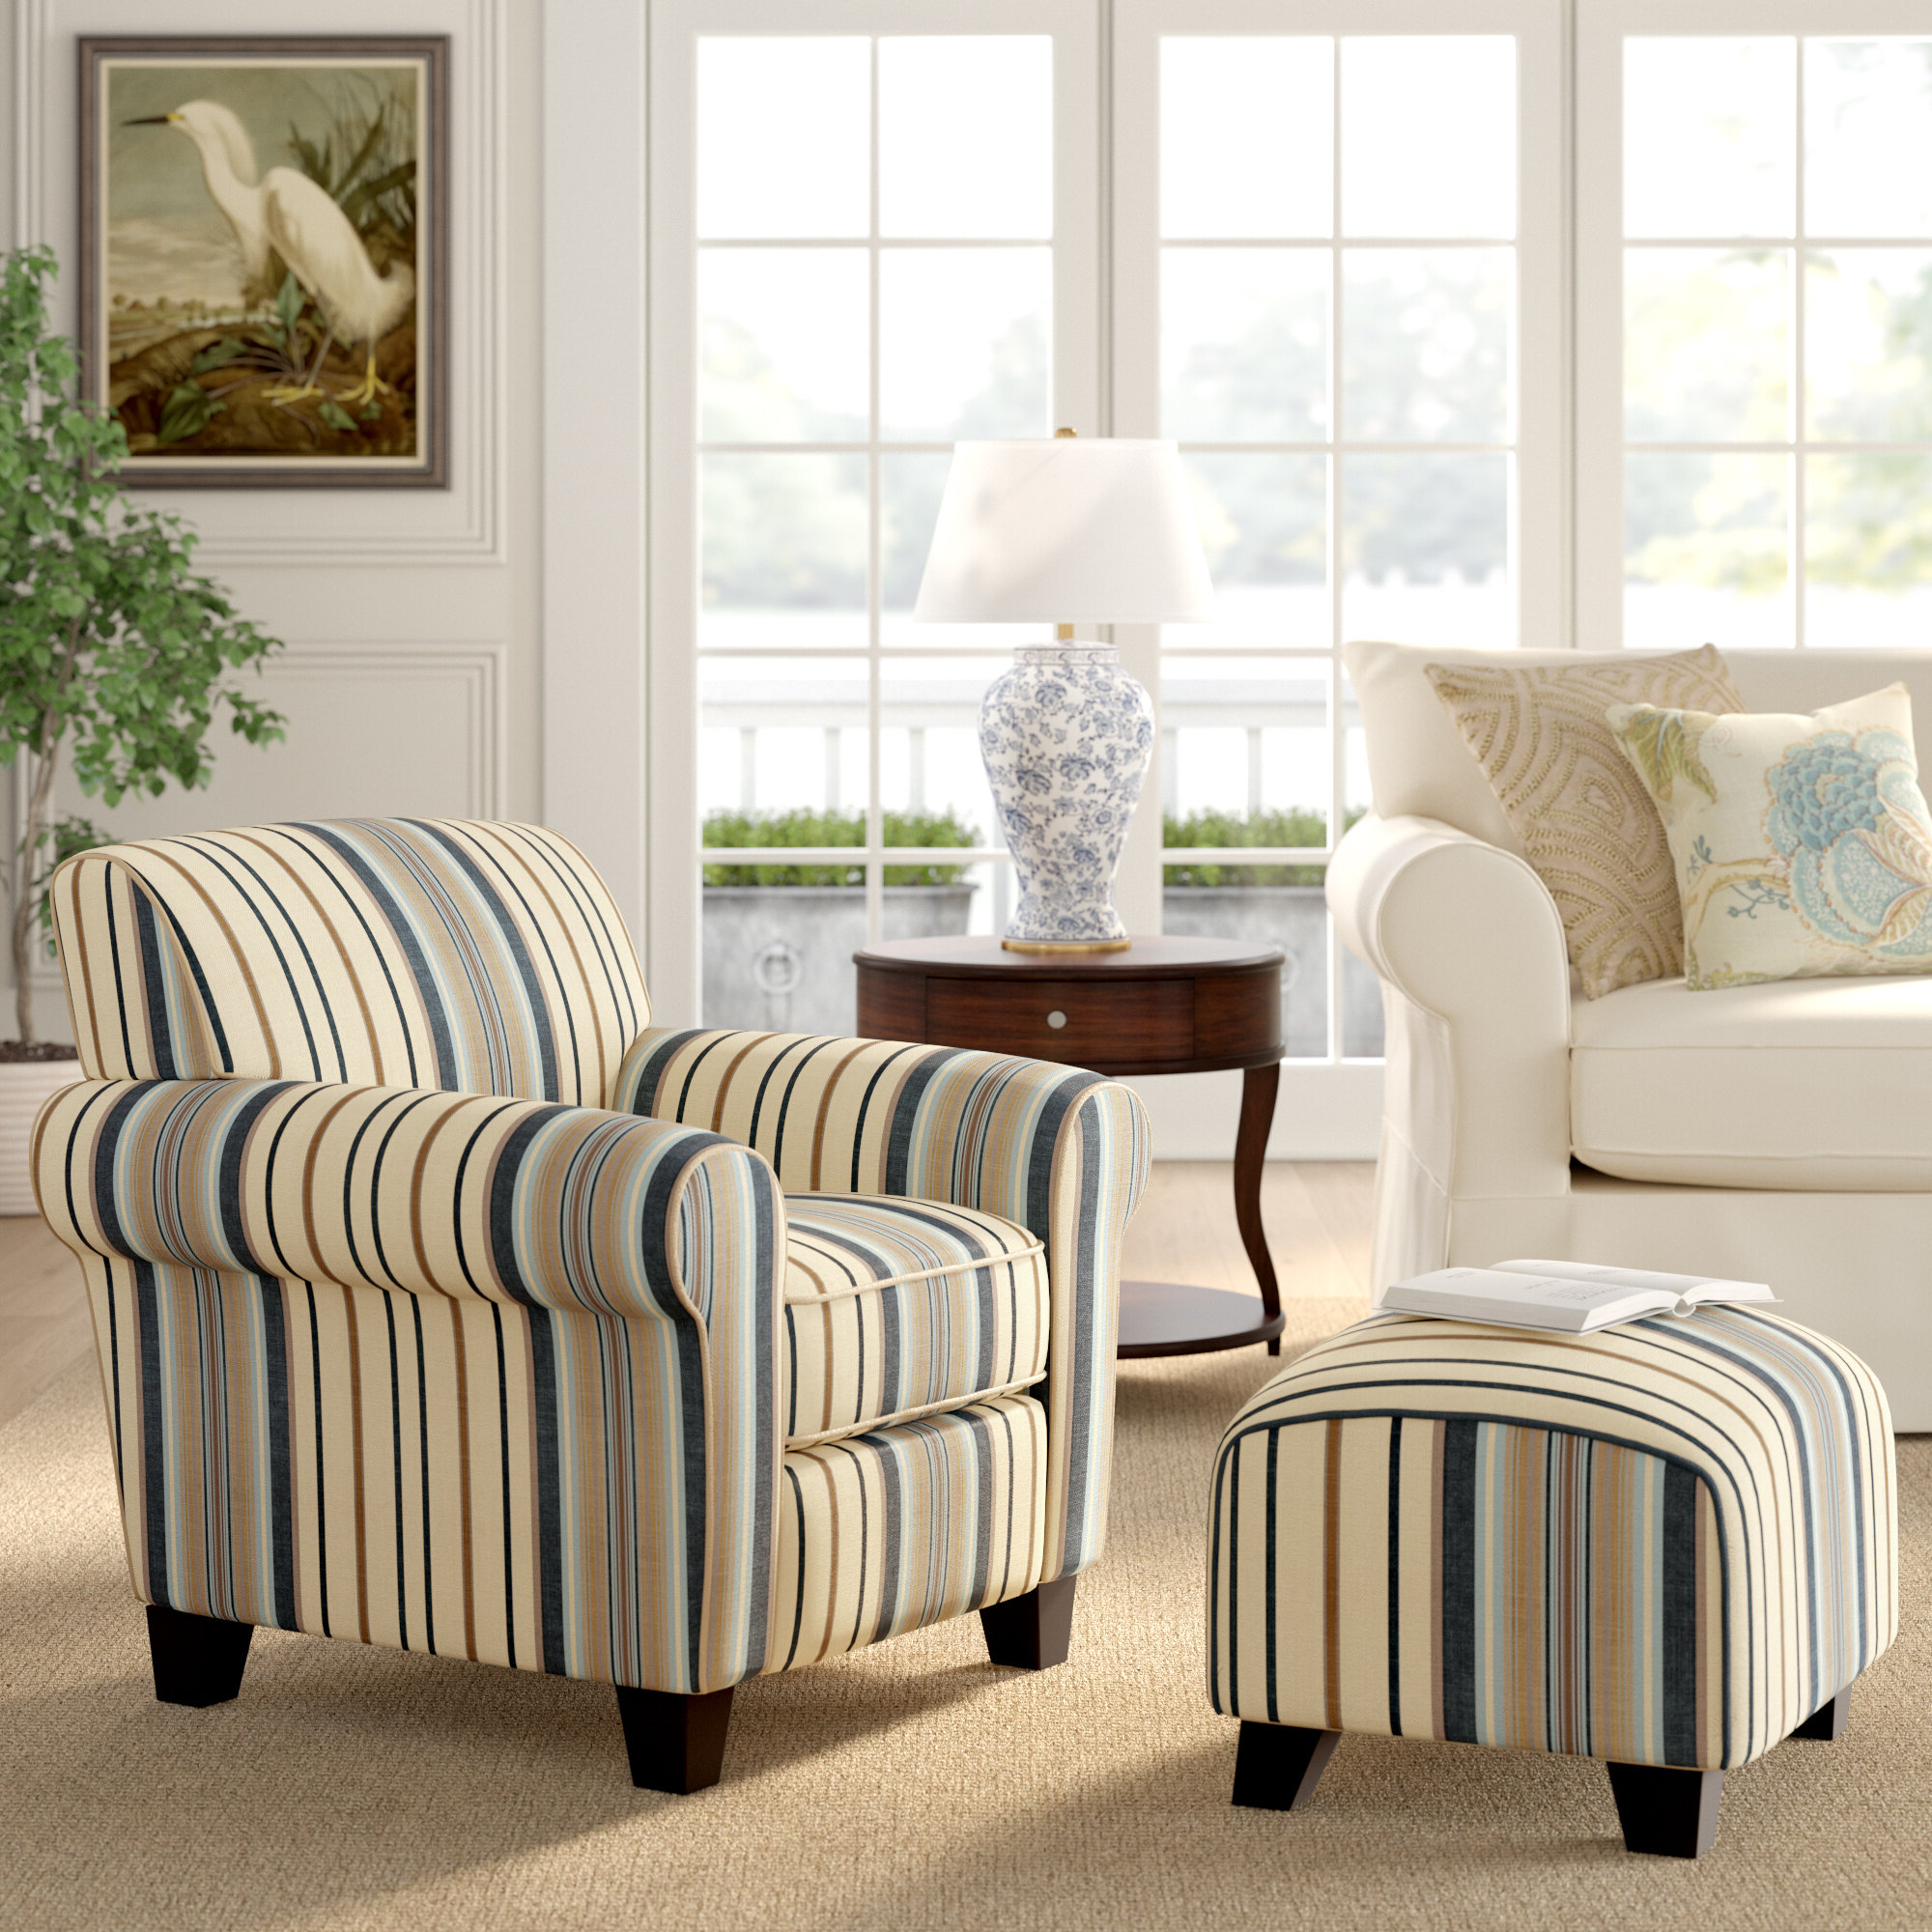 2019 Brown Ottoman Included Accent Chairs You'll Love In 2021 For Harmon Cloud Barrel Chairs And Ottoman (View 10 of 20)